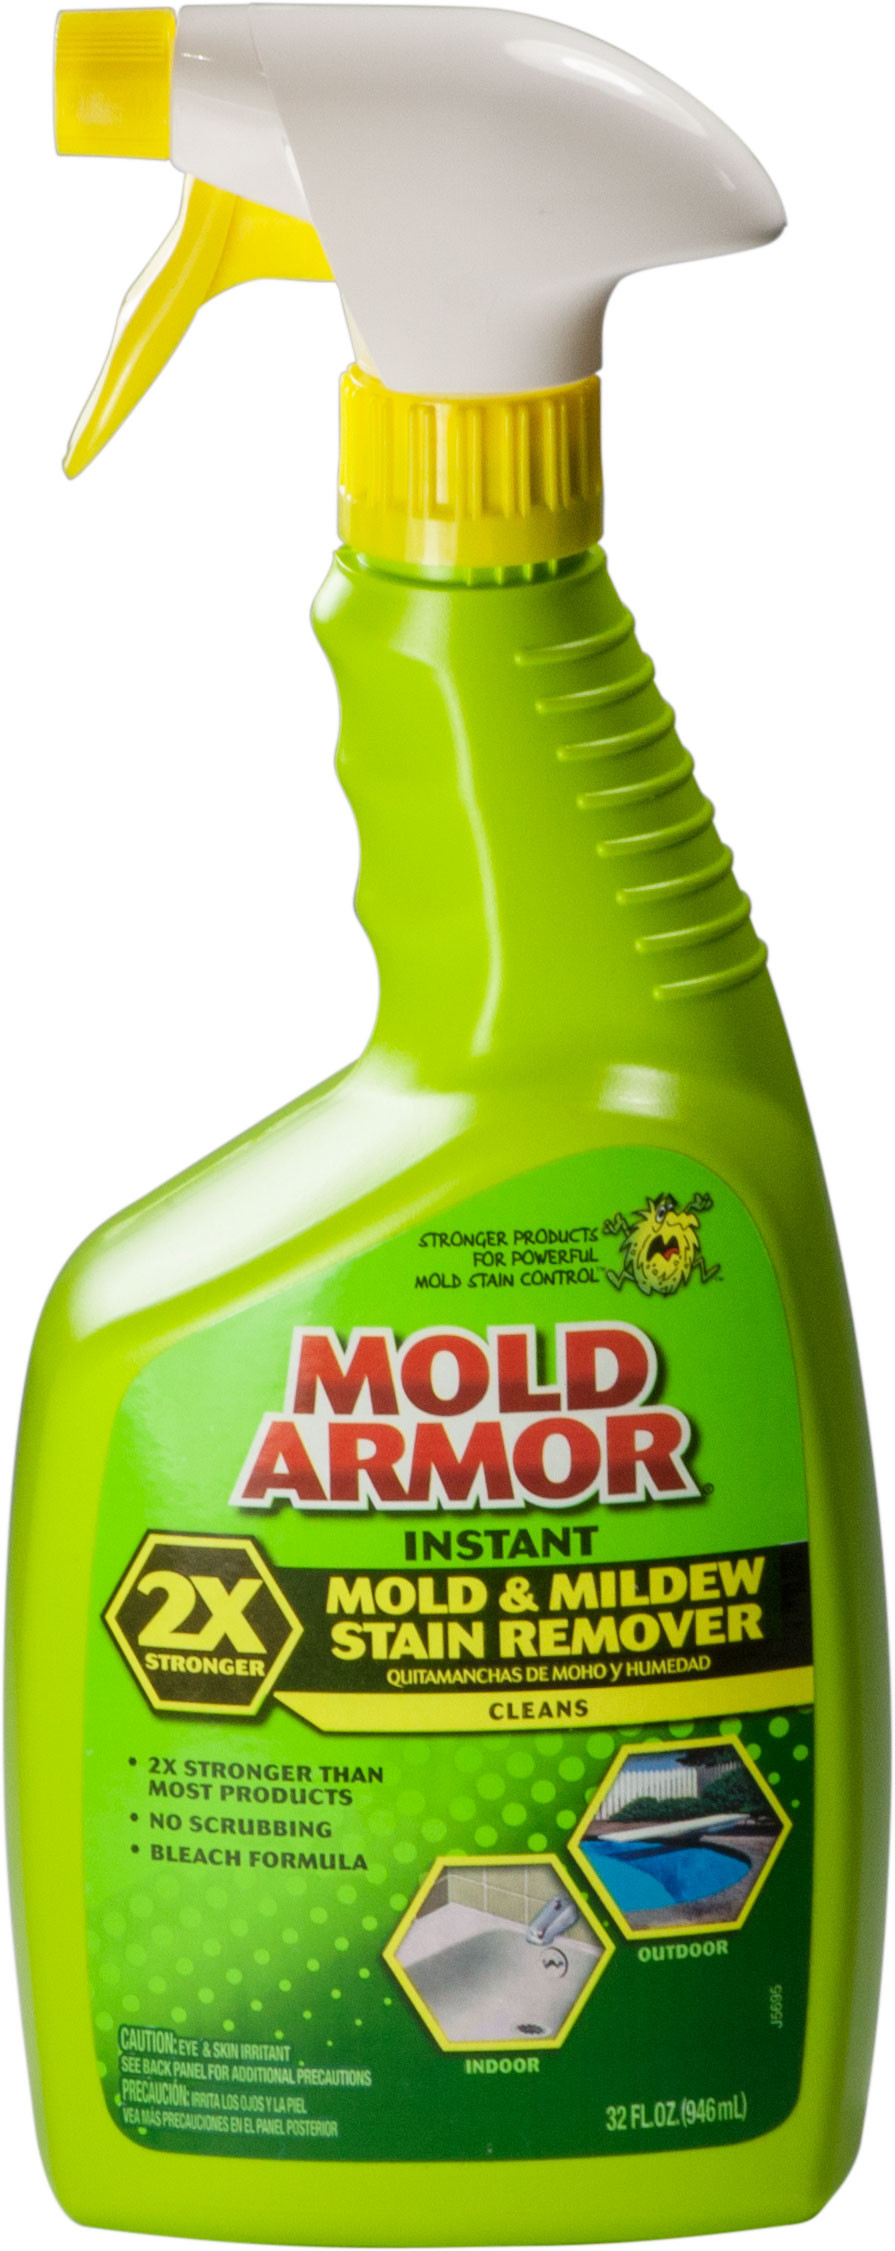 Mold Armor Fg502 32 Ounce Mold And Mildew Stain Remover 075919005026 2